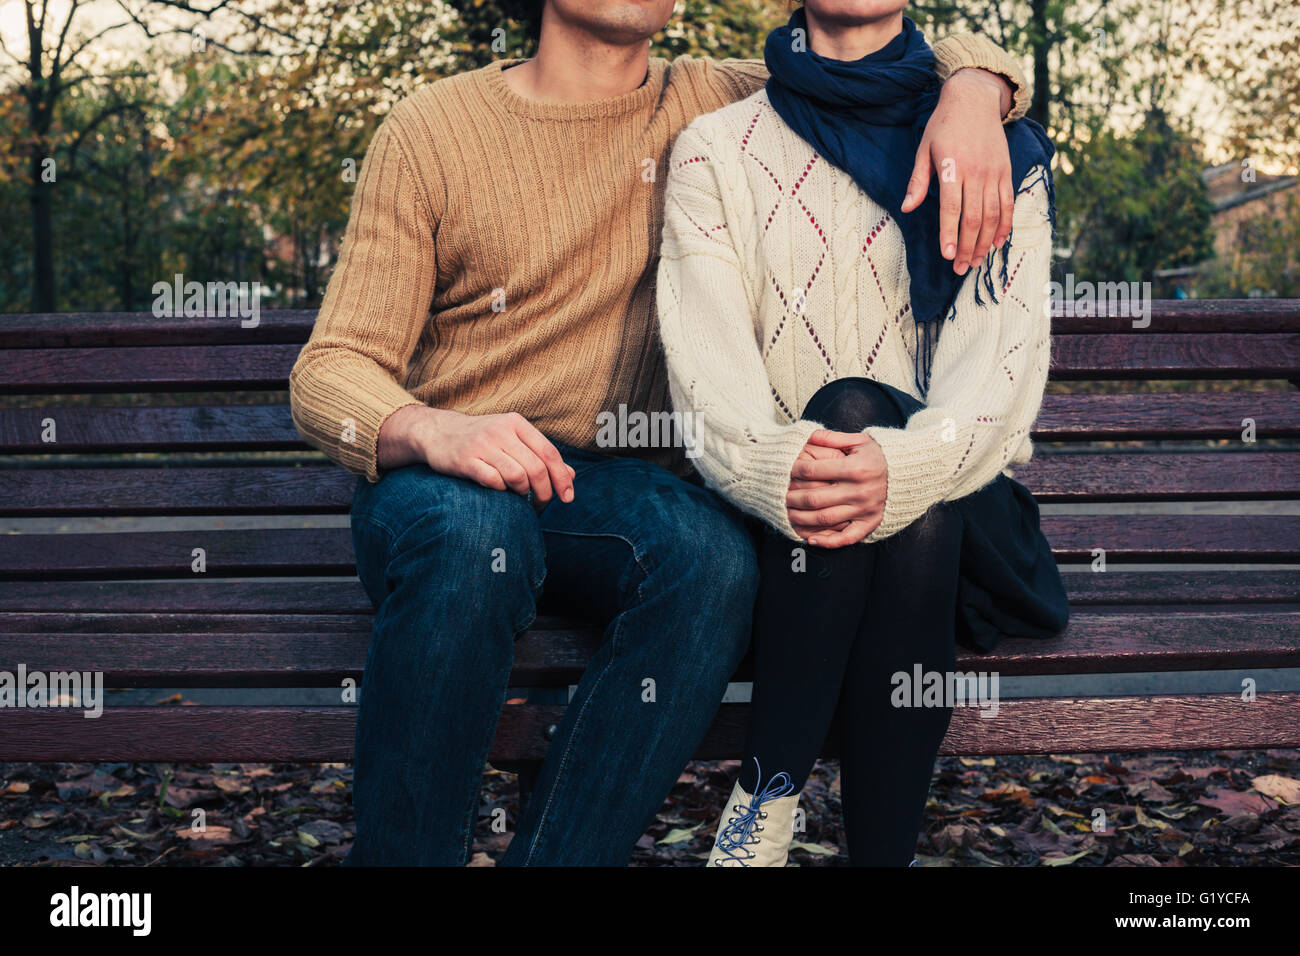 A young couple is sitting and holding each other on a park bench in autumn - Stock Image